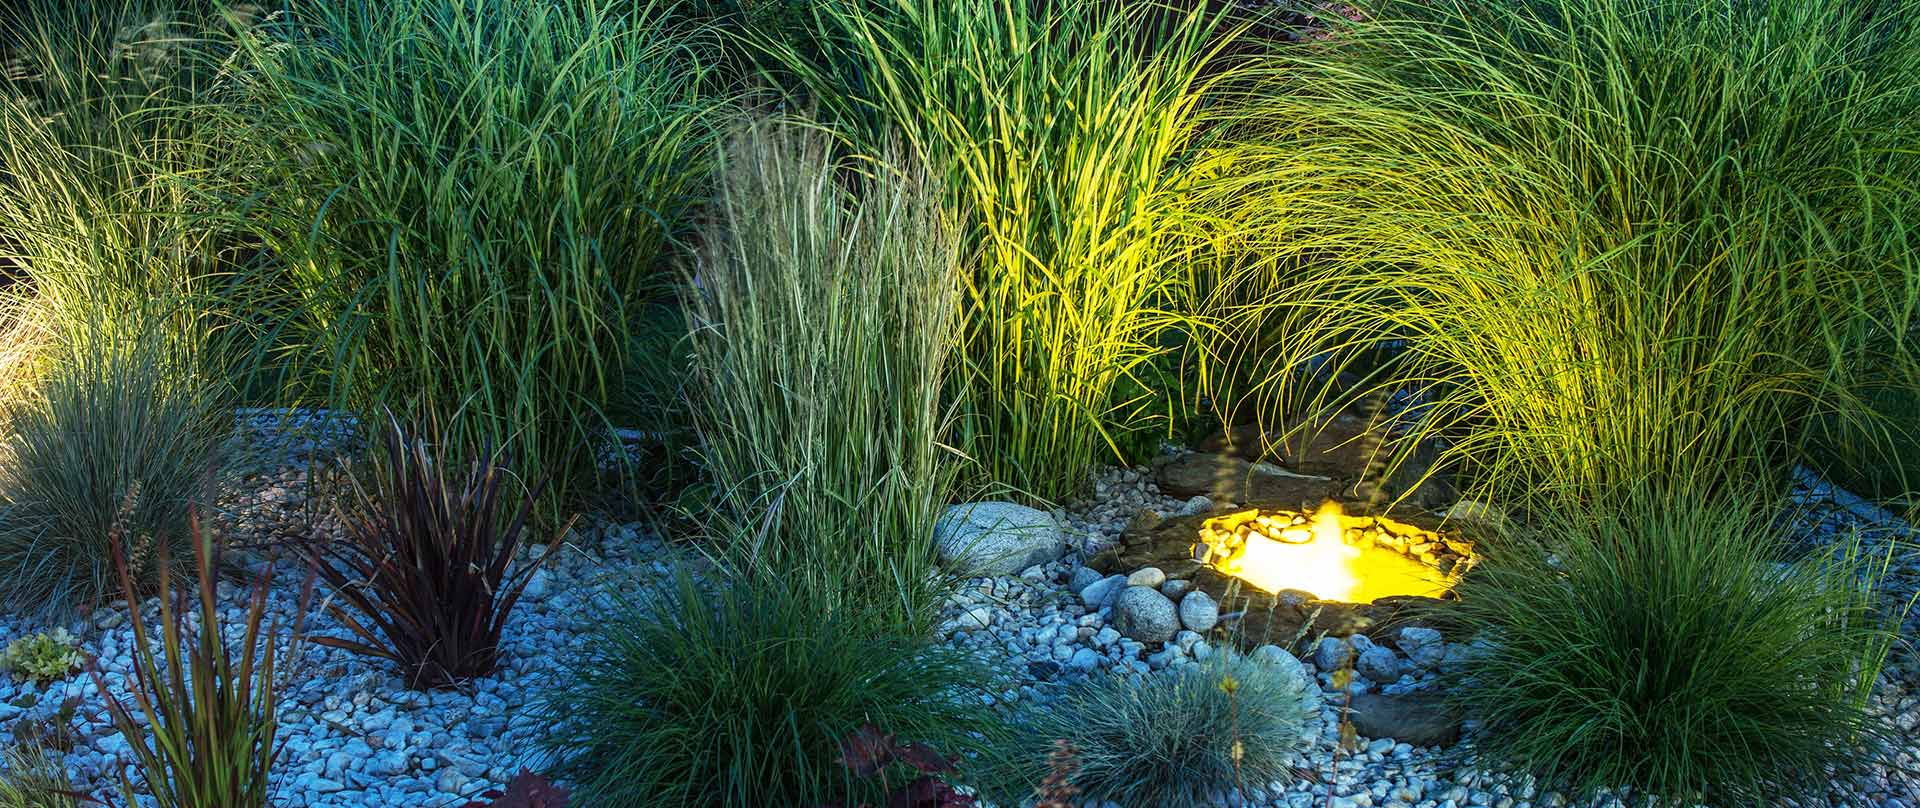 3 Reasons to Invest in Landscape Lighting for Your San Marcos Property